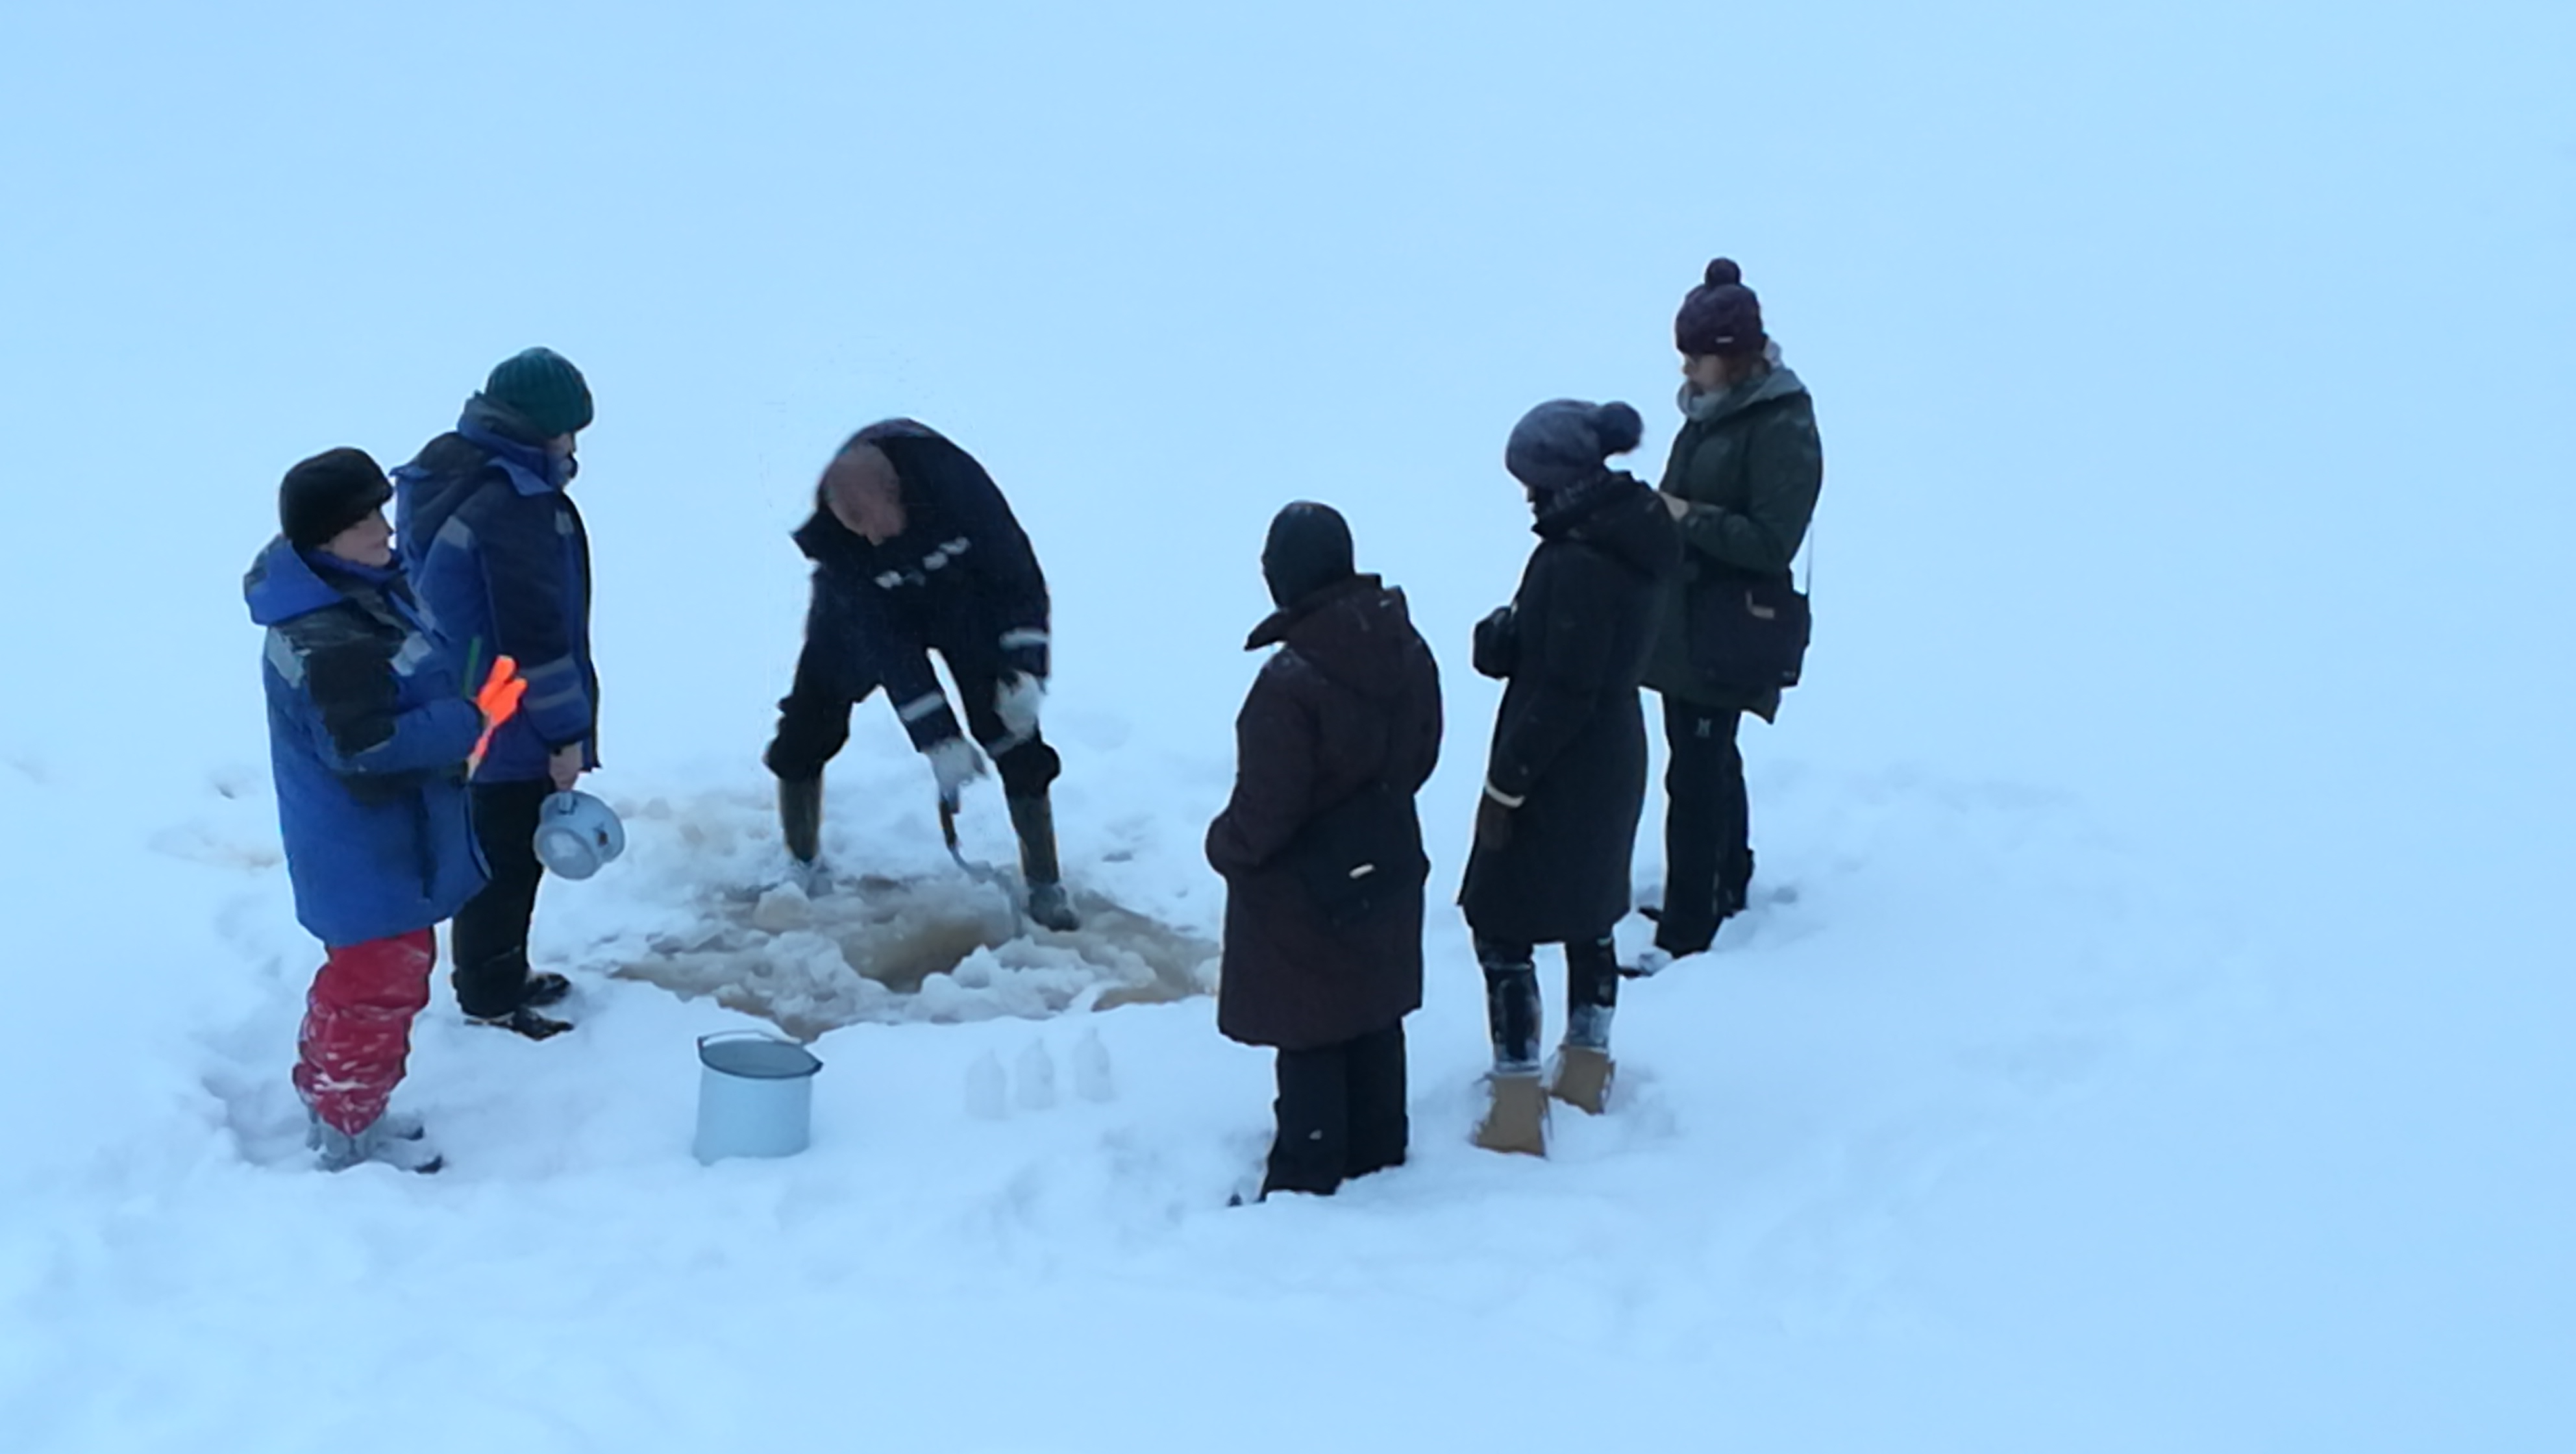 On January 22-23, 2019 project partners of КА5016 jointly took samples of Tohmajoki river water